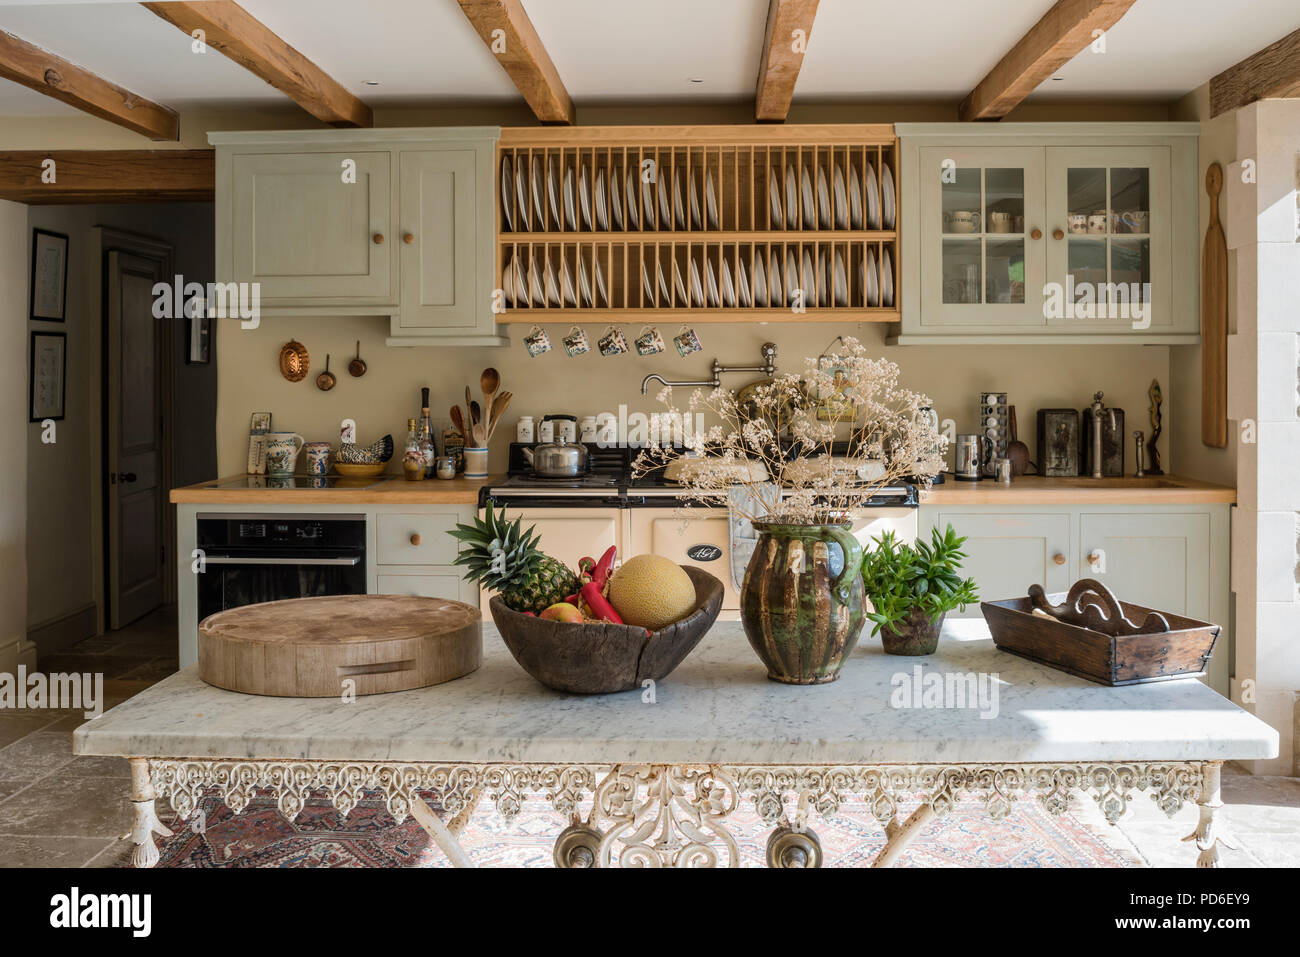 Wooden Plate Rack Above Aga In Green Fitted Farmhouse Kitchen Stock Photo Alamy